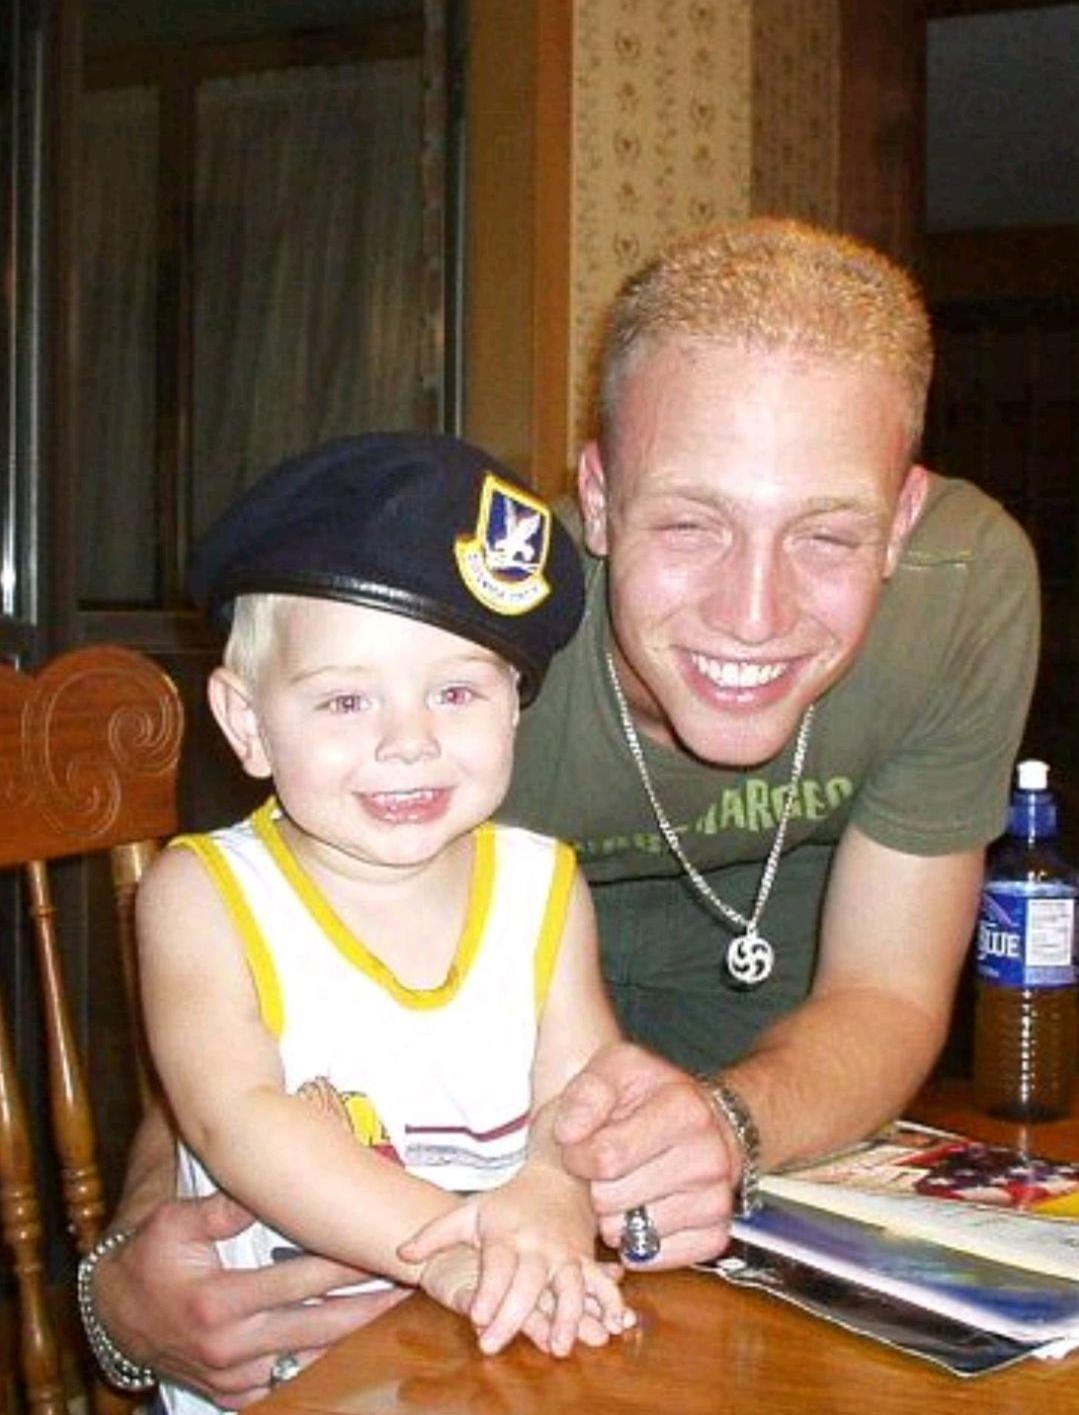 Jarrett Parker with his younger brother